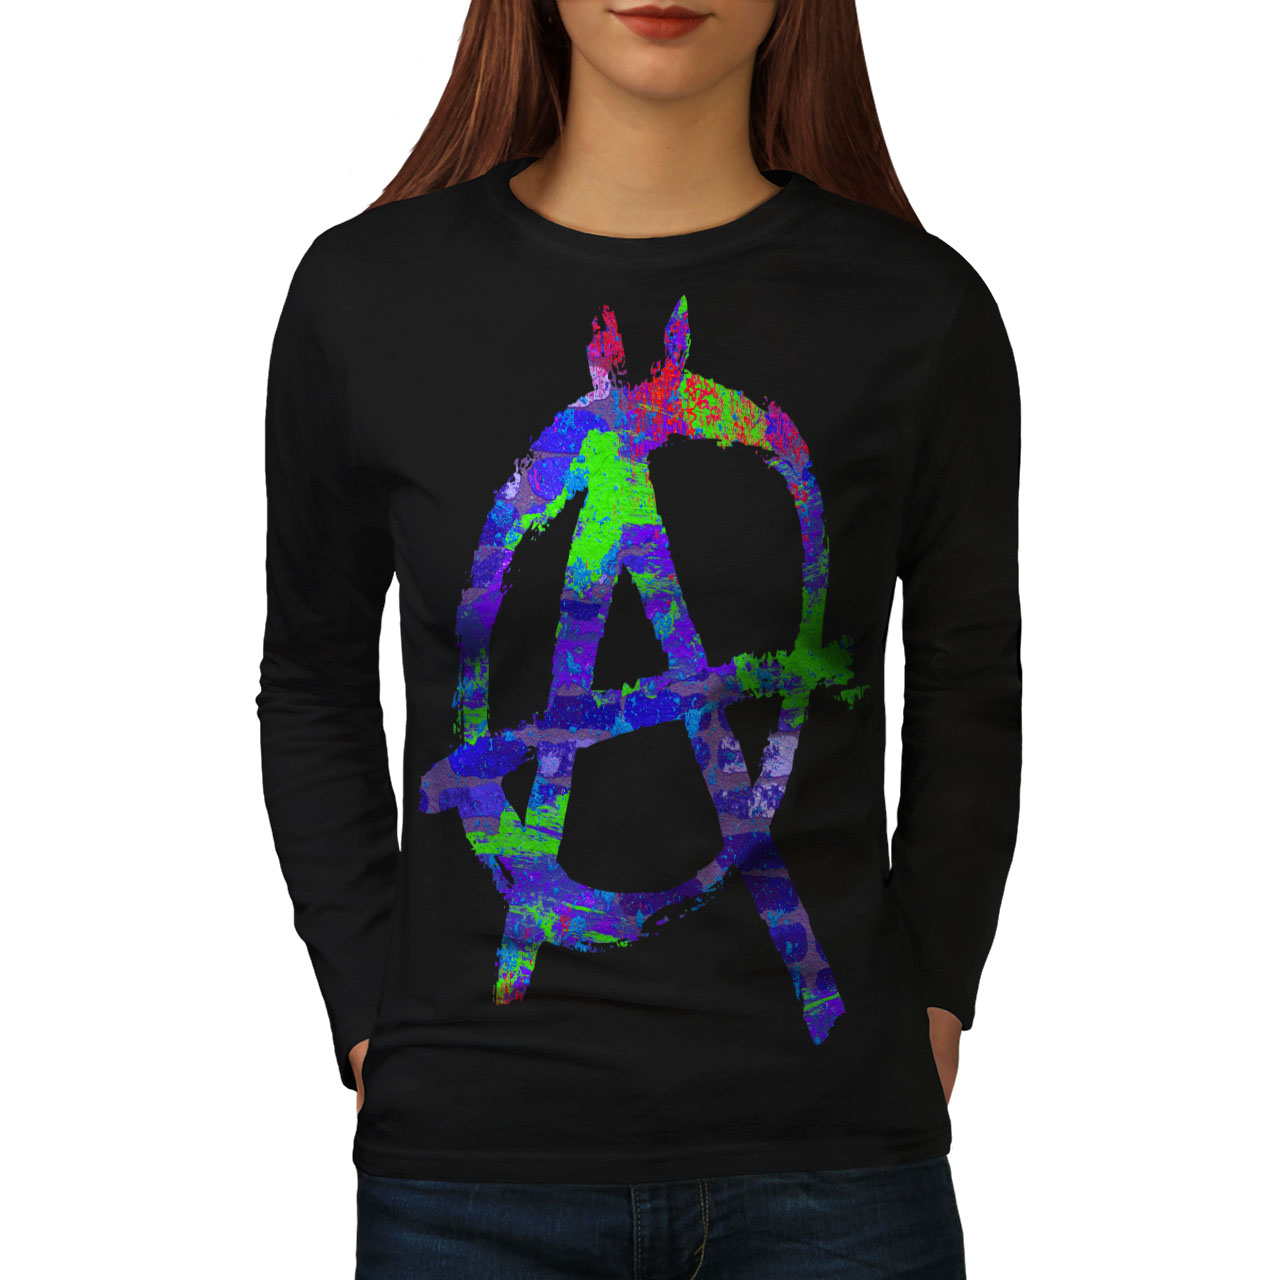 Wellcoda Resistance Protest Mens Long Sleeve T-shirt Anarchy Graphic Design